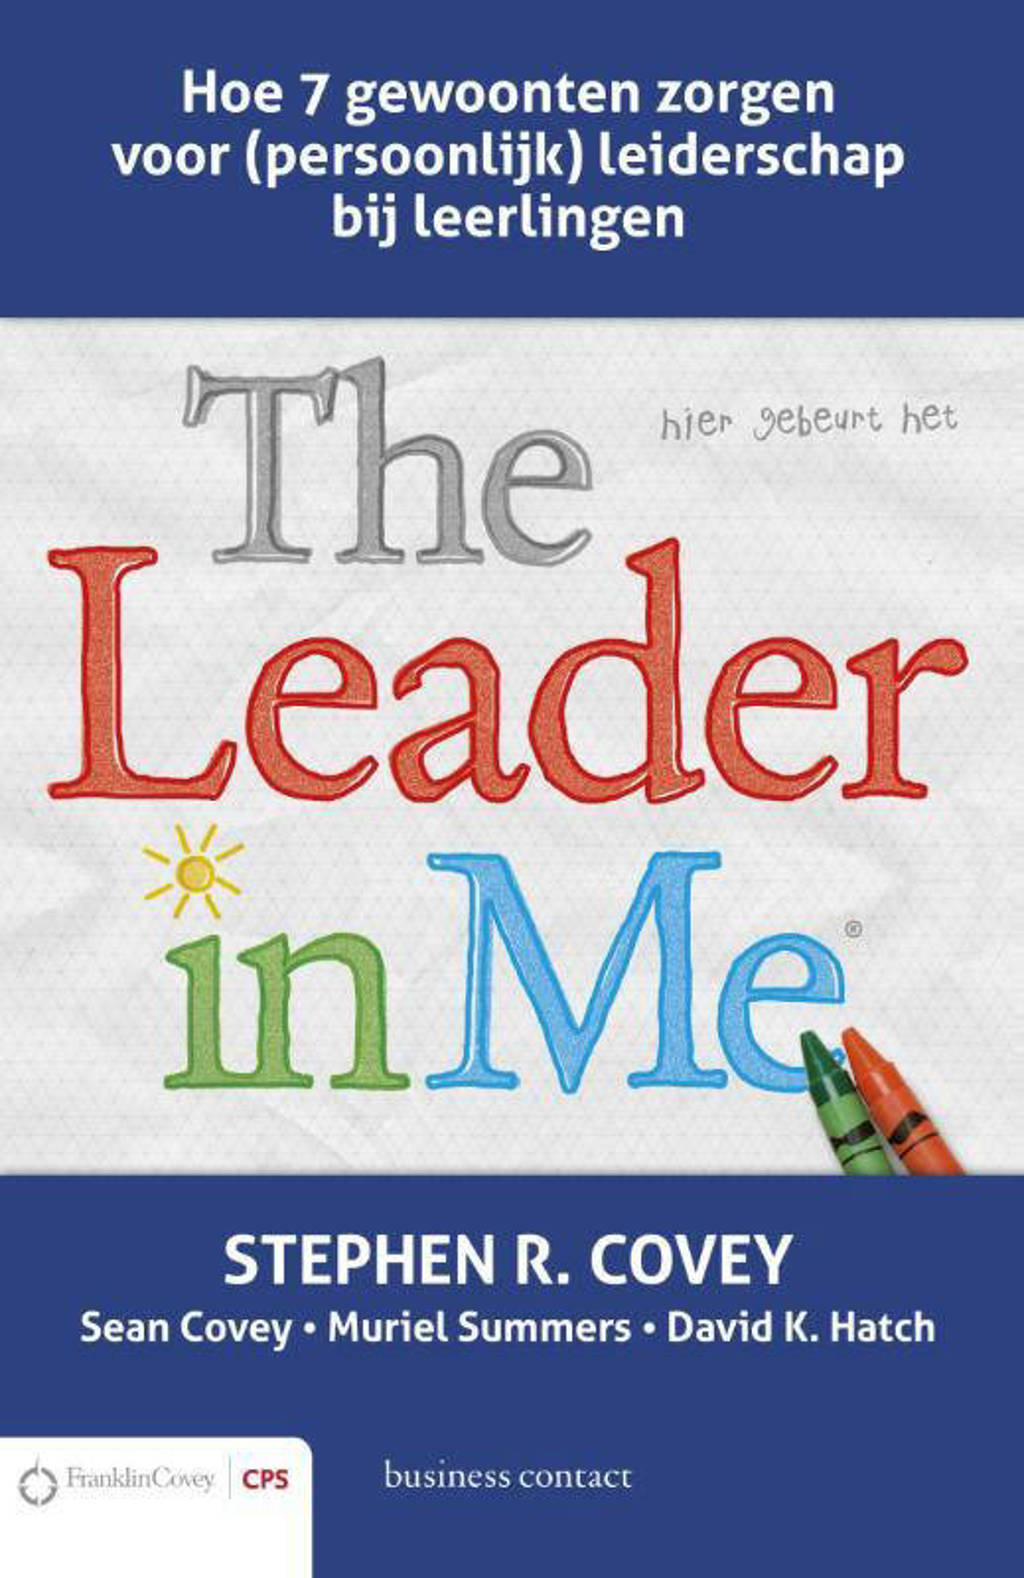 The leader in me - Stephen R. Covey, Sean Covey, Muriel Summers, e.a.